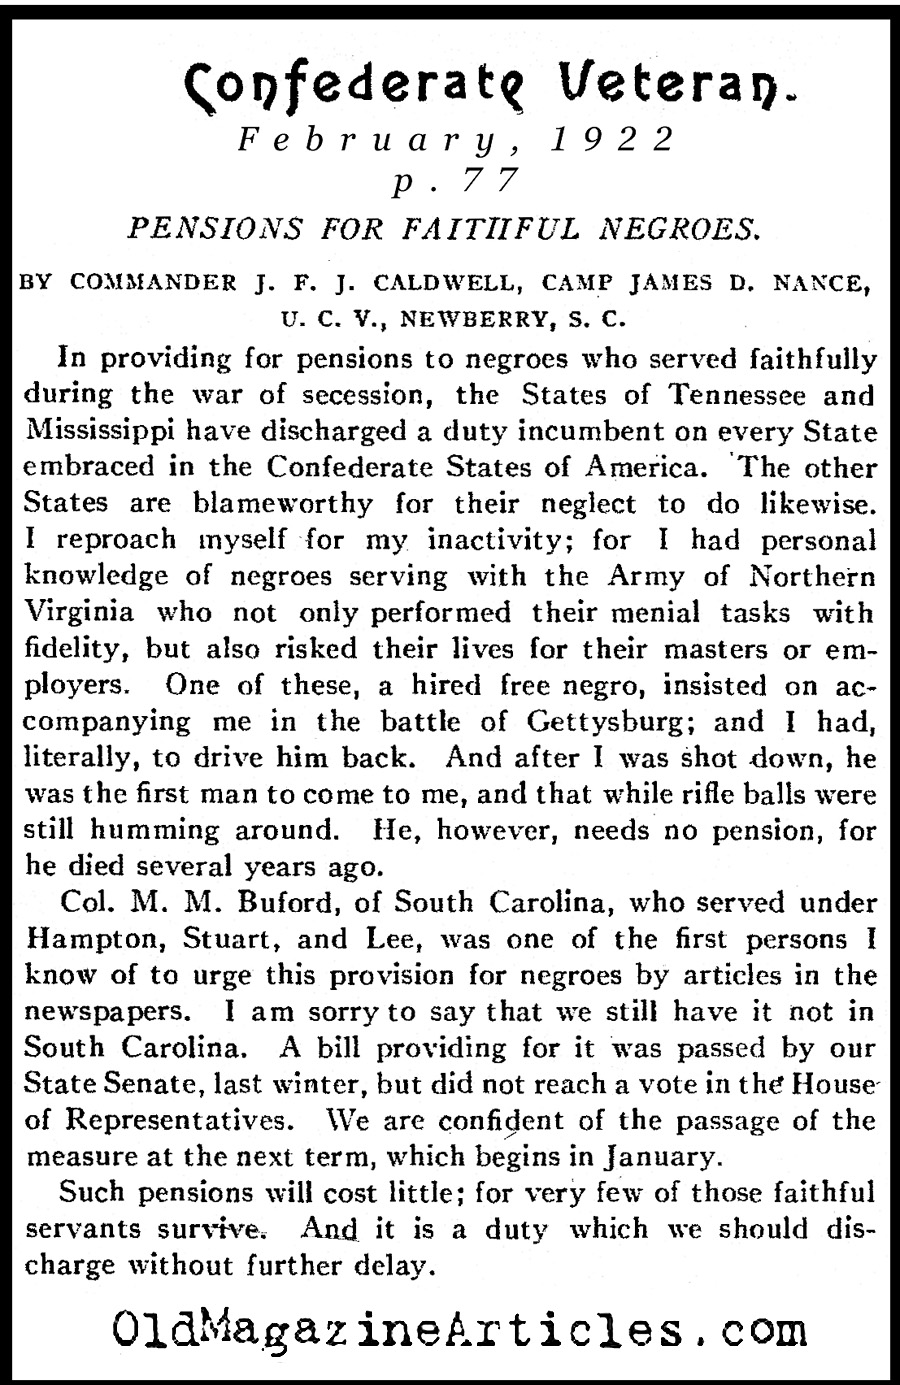 The Black-Confederates (Confederate Veteran Magazine, 1922)